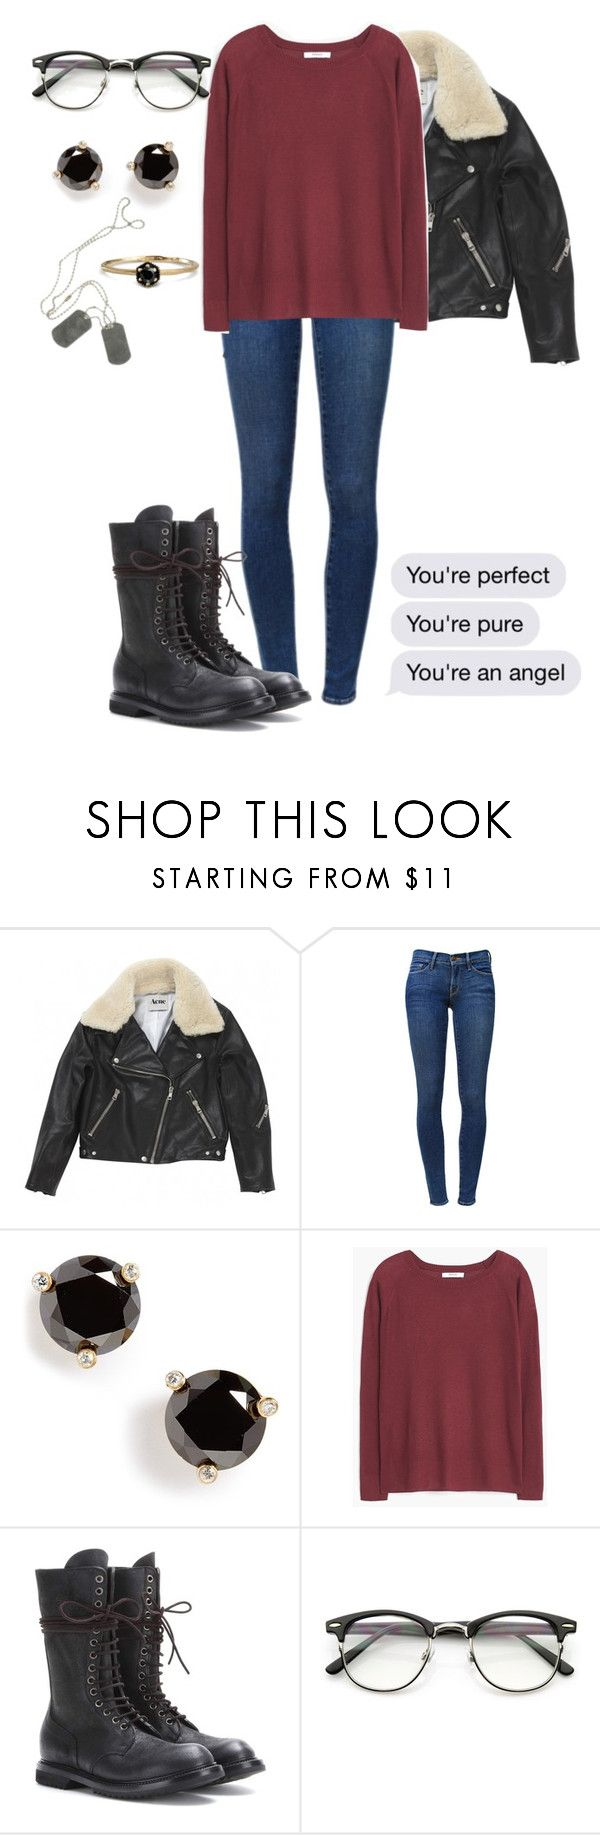 """You're an angel"" by dreams-of-a-samurai ❤ liked on Polyvore featuring Acne Studios, Frame, Kate Spade, MANGO, Rick Owens and Satomi Kawakita"